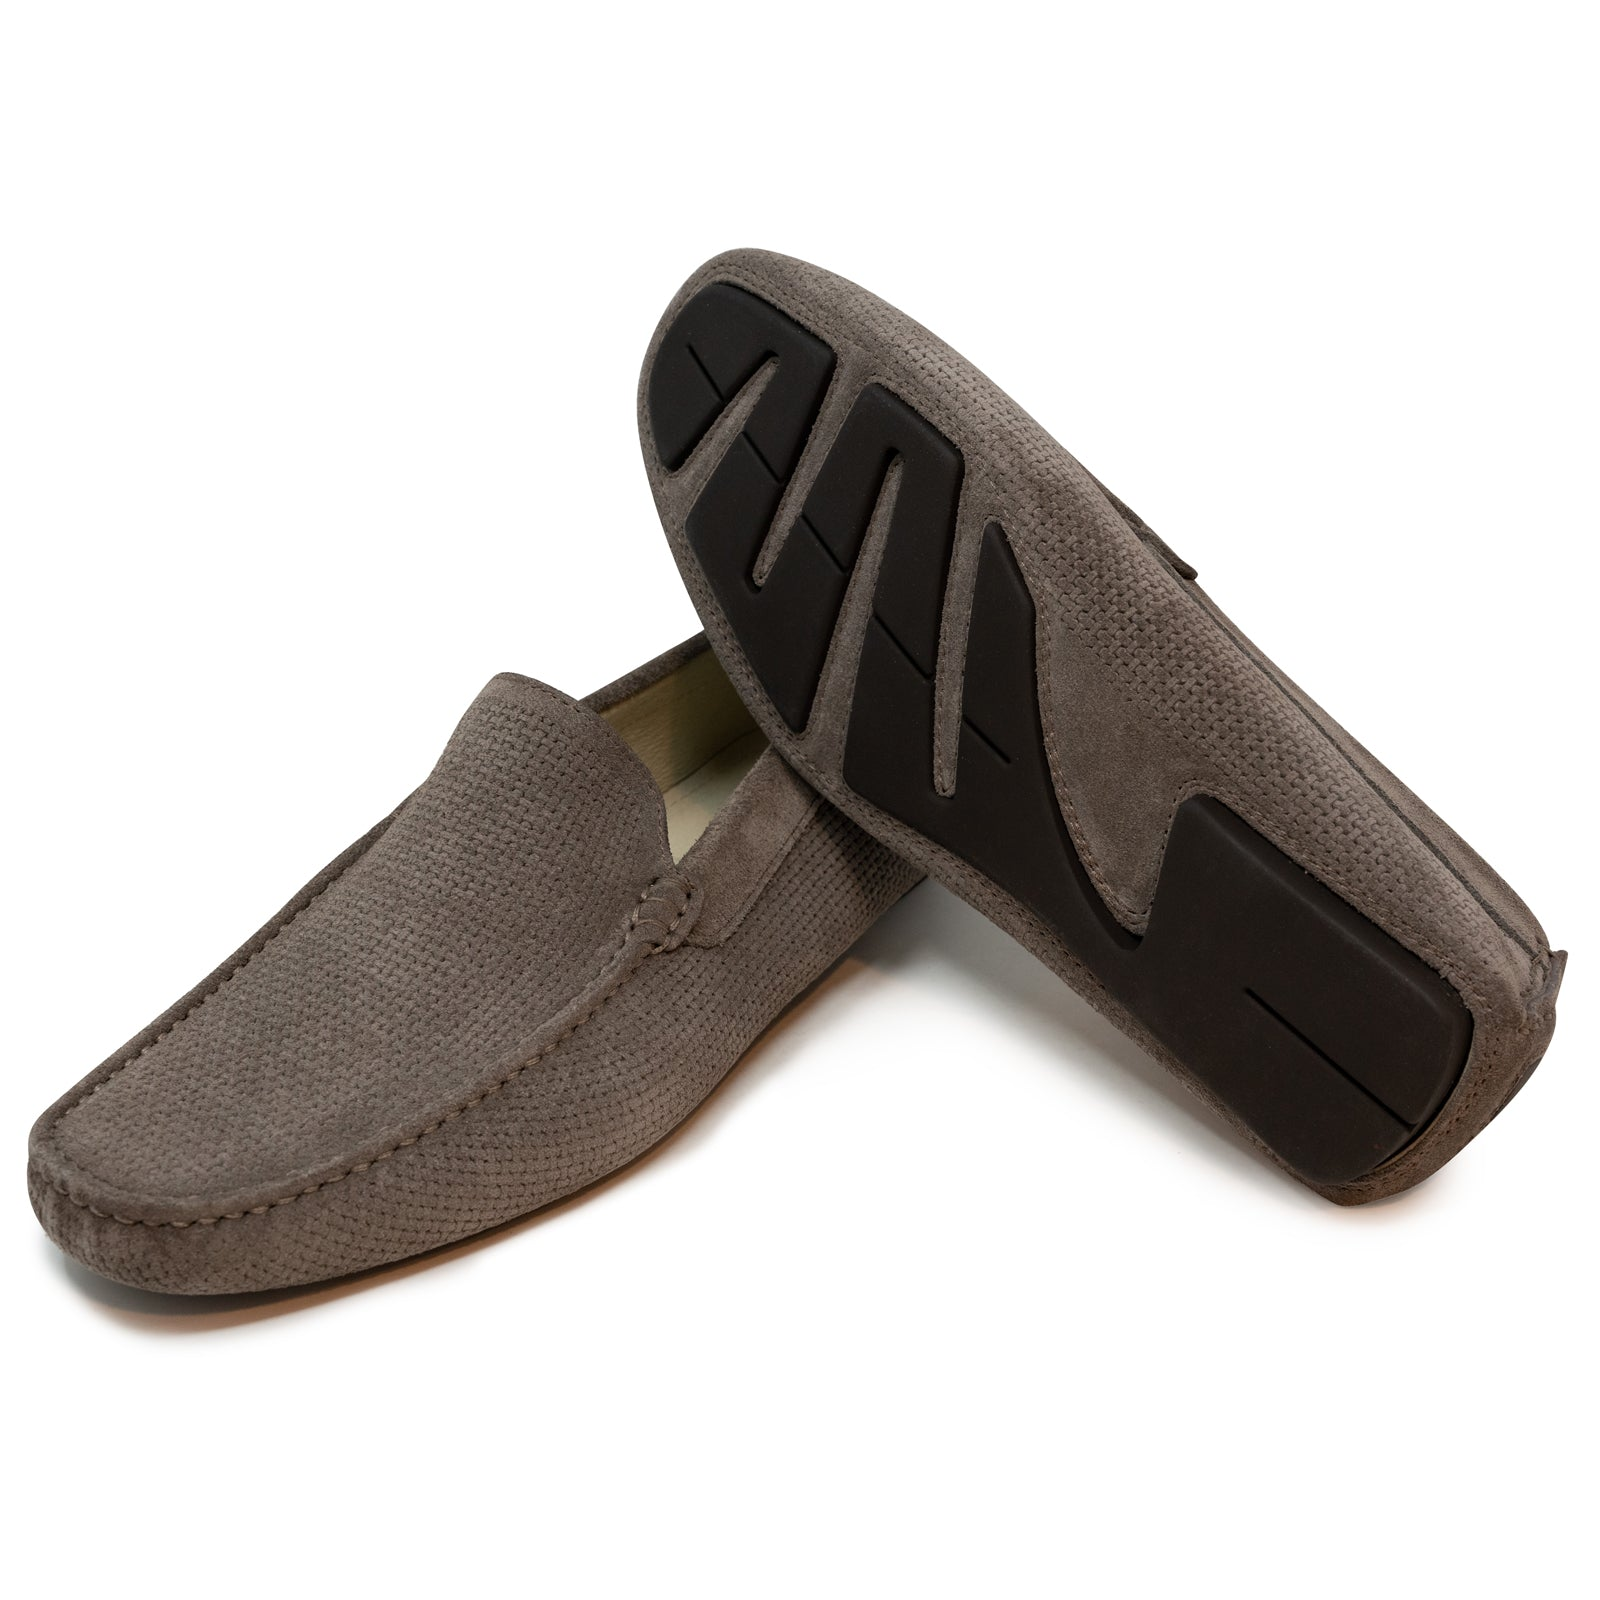 Men's Driving Shoes in Velour Taupe Leather